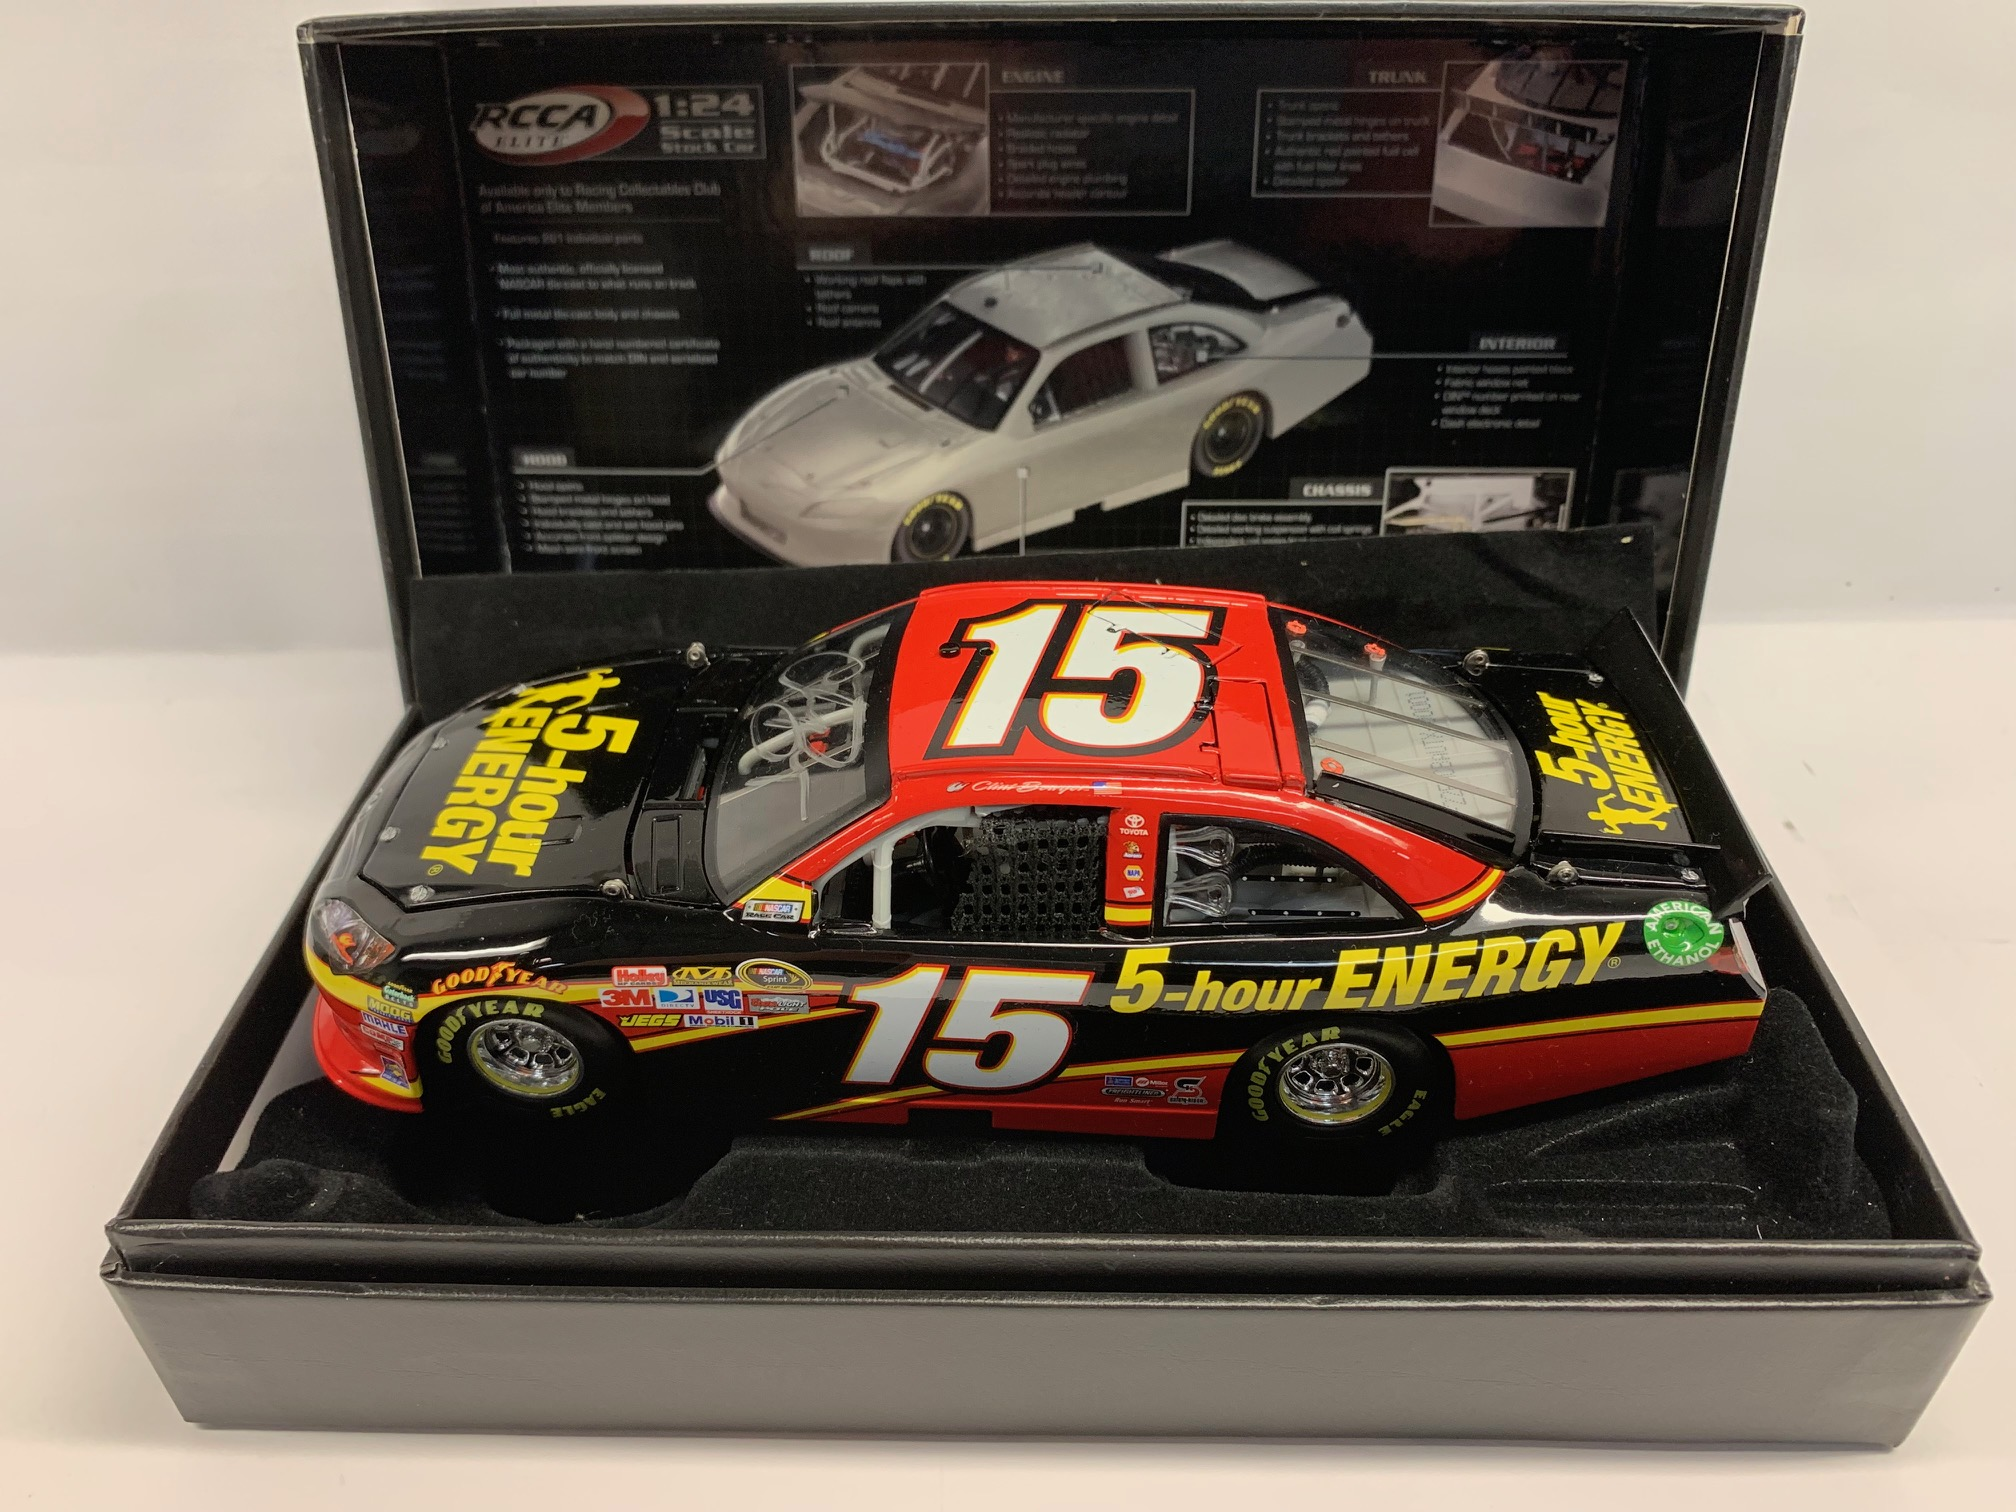 2012 Clint Bowyer 5-Hour Energy / Autographed ELITE